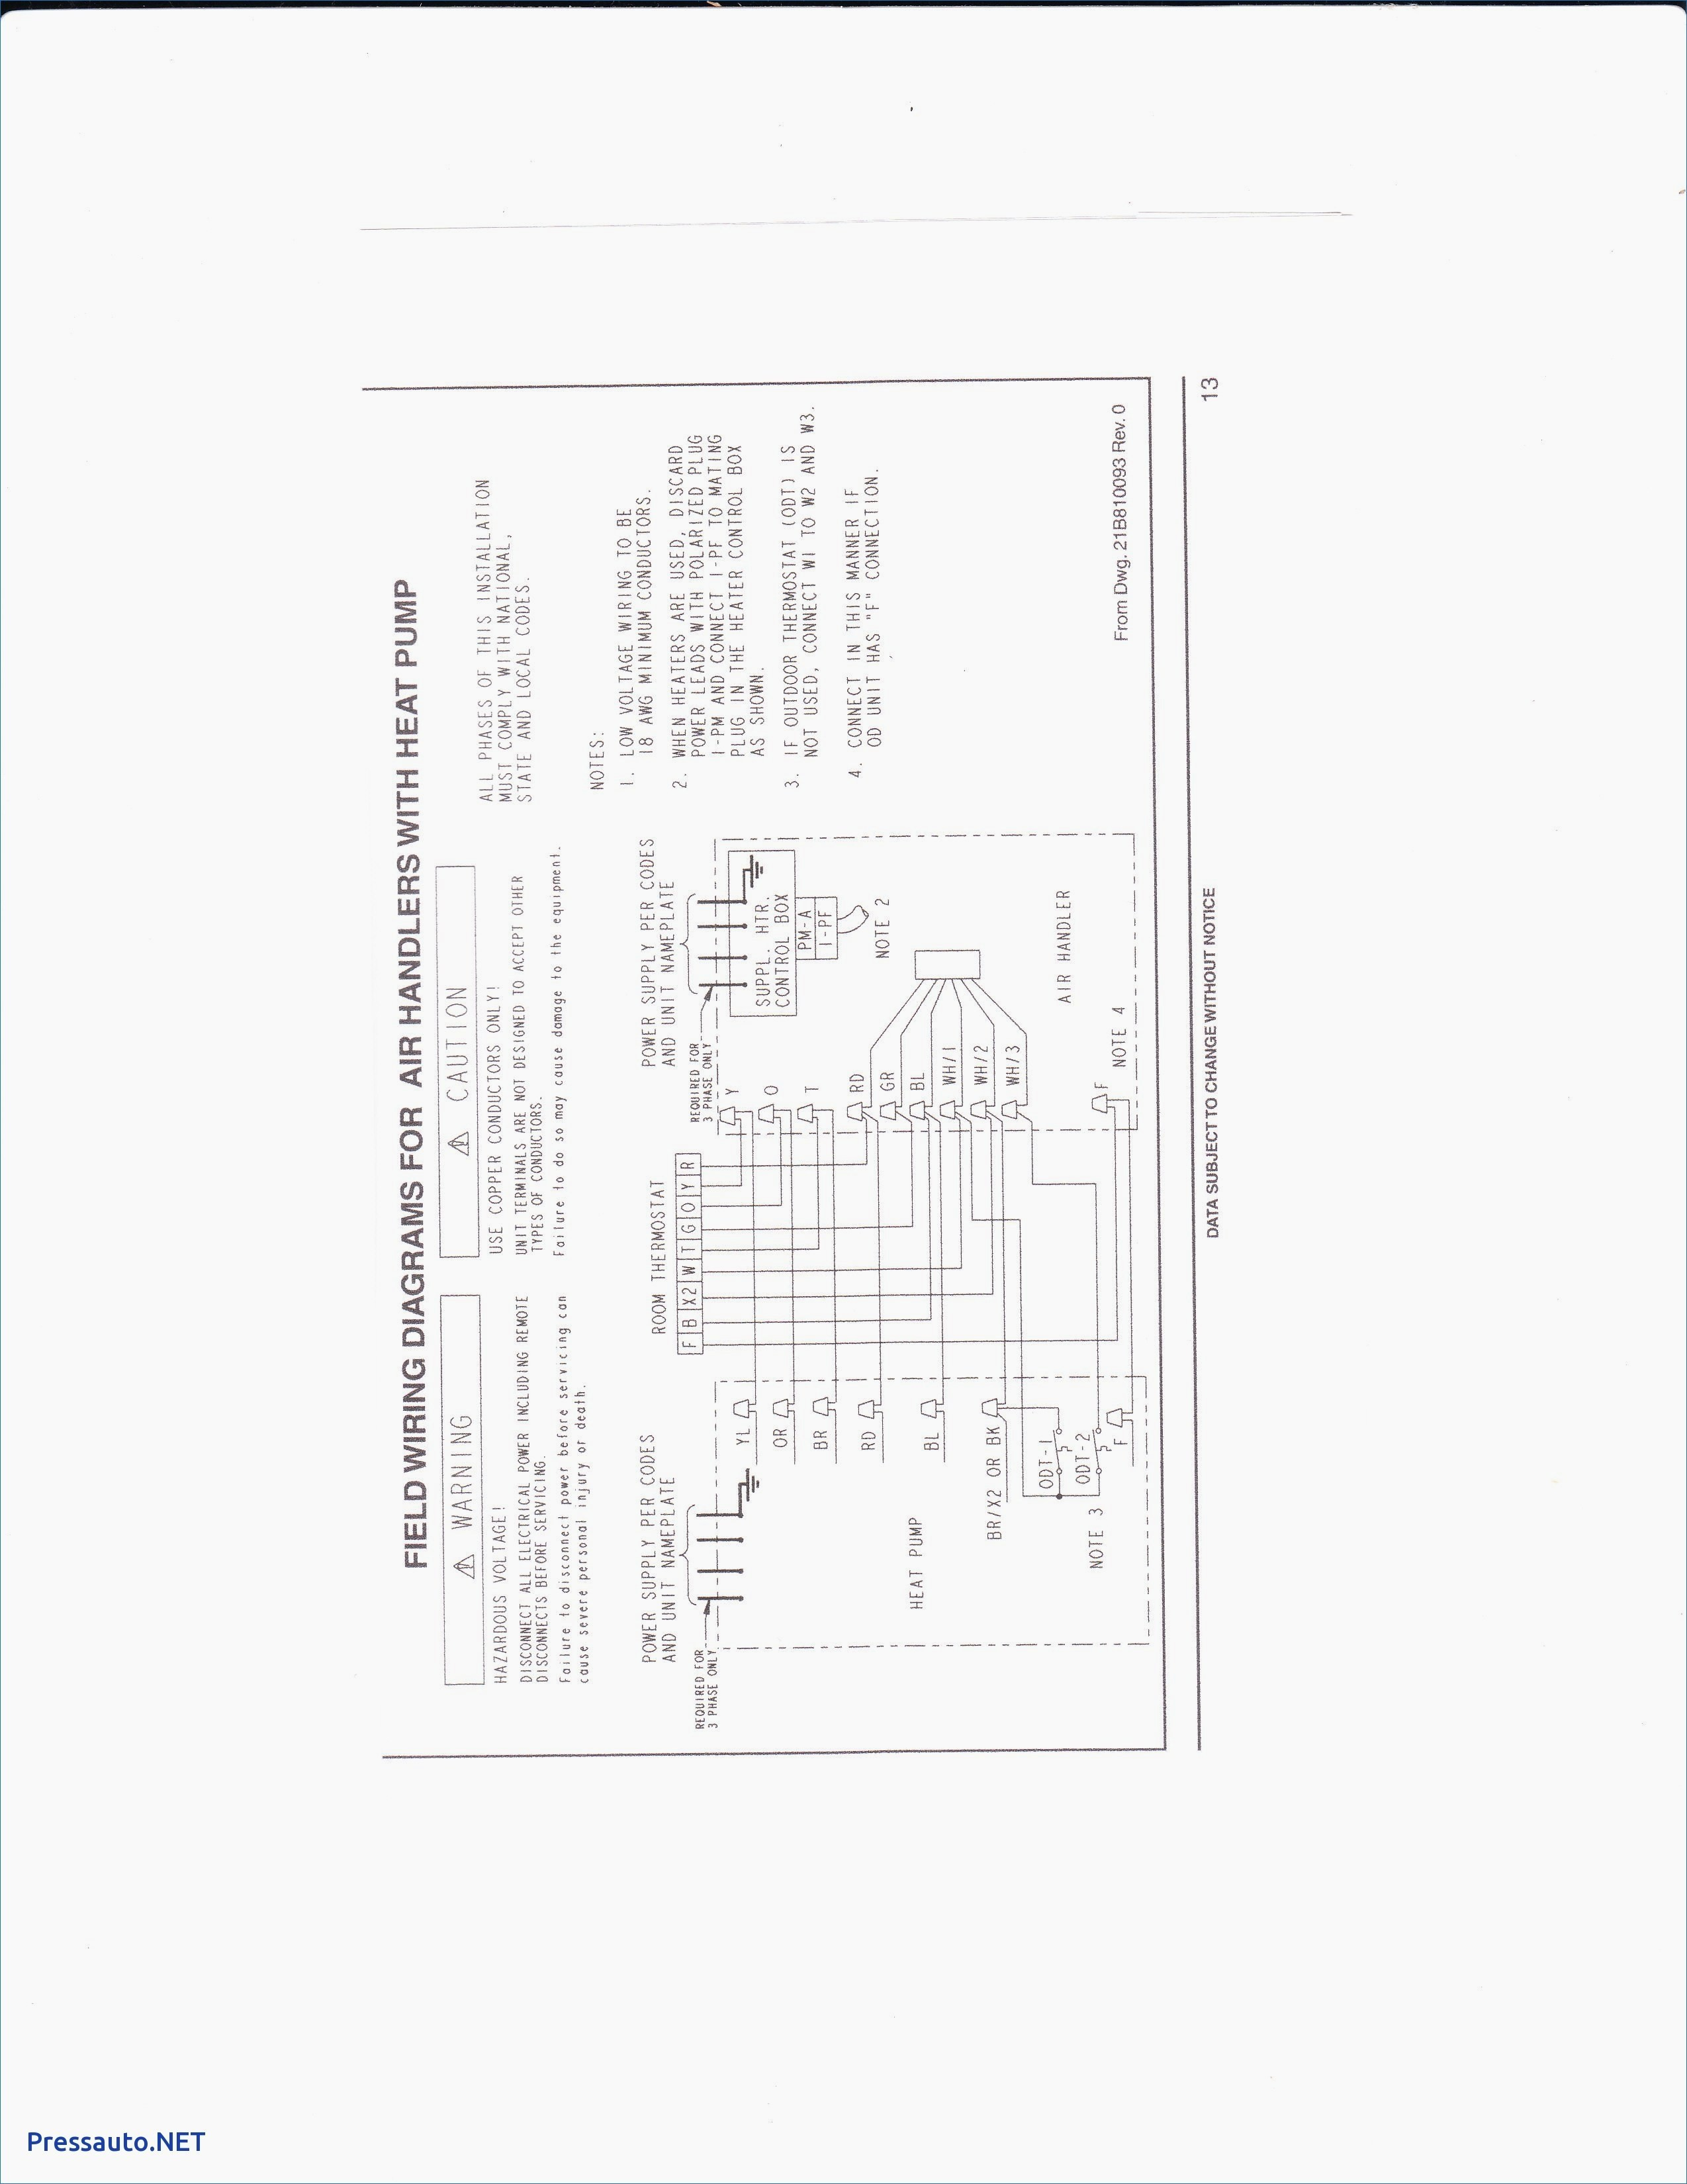 Wiring Diagram For Ruud Ac Unit Sizing An Air Handling Grihon Diagrams Old Fashioned Position Simple